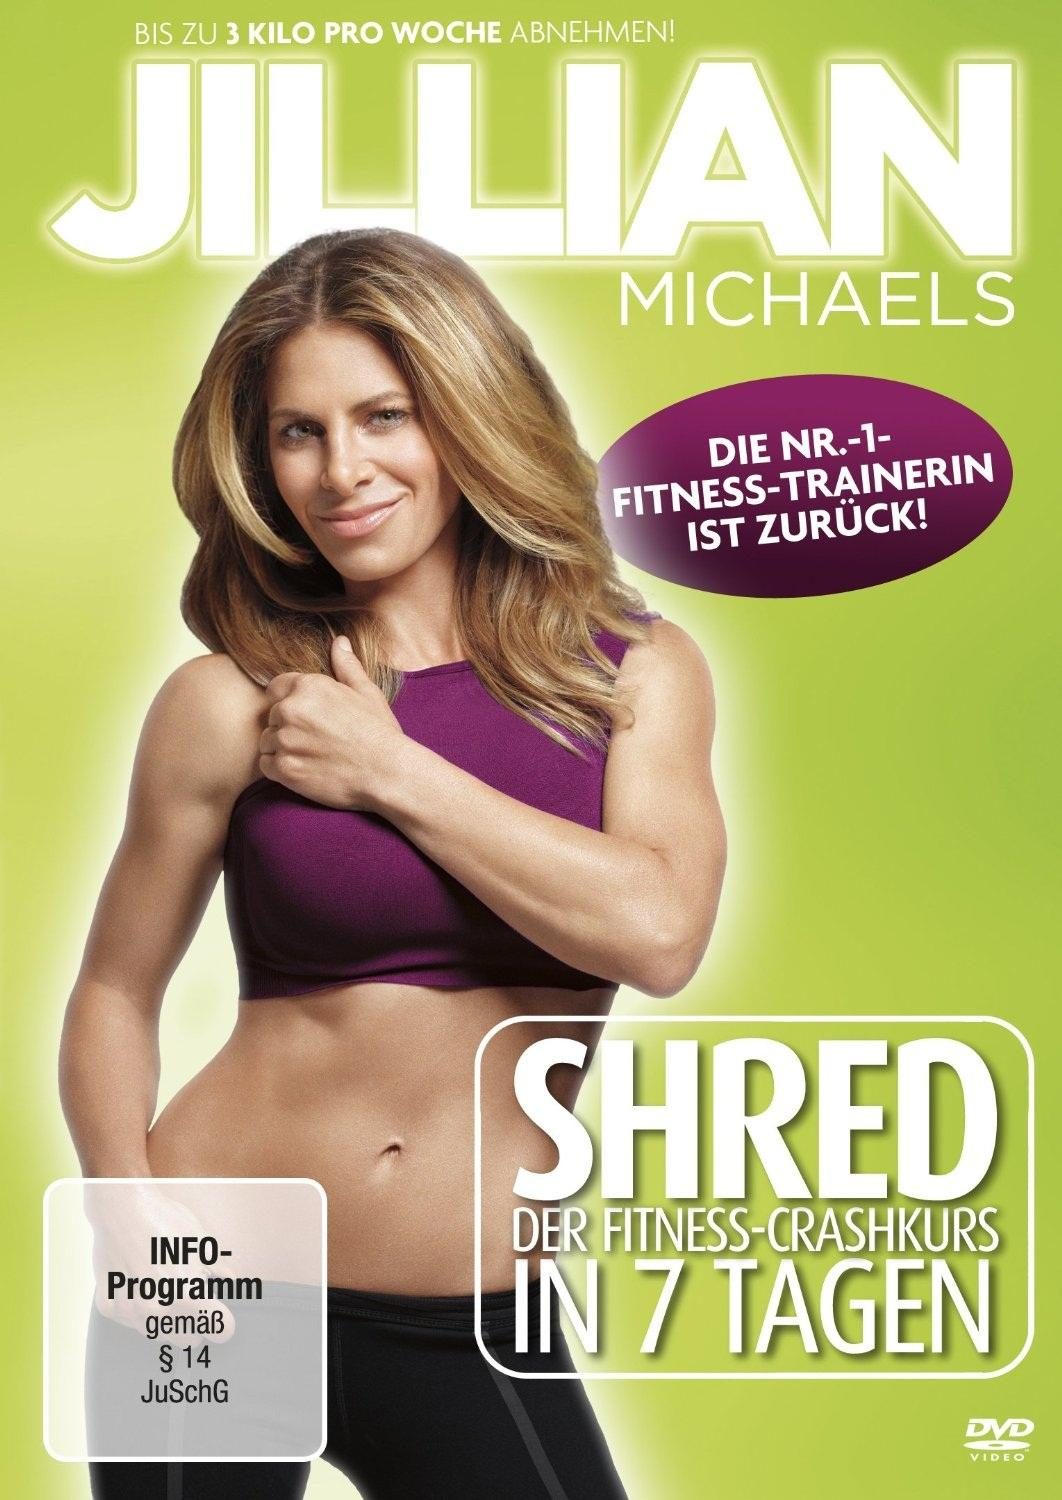 Bild Jillian Michaels - Shred - Der Fitness-Crashkurs in 7 Tagen